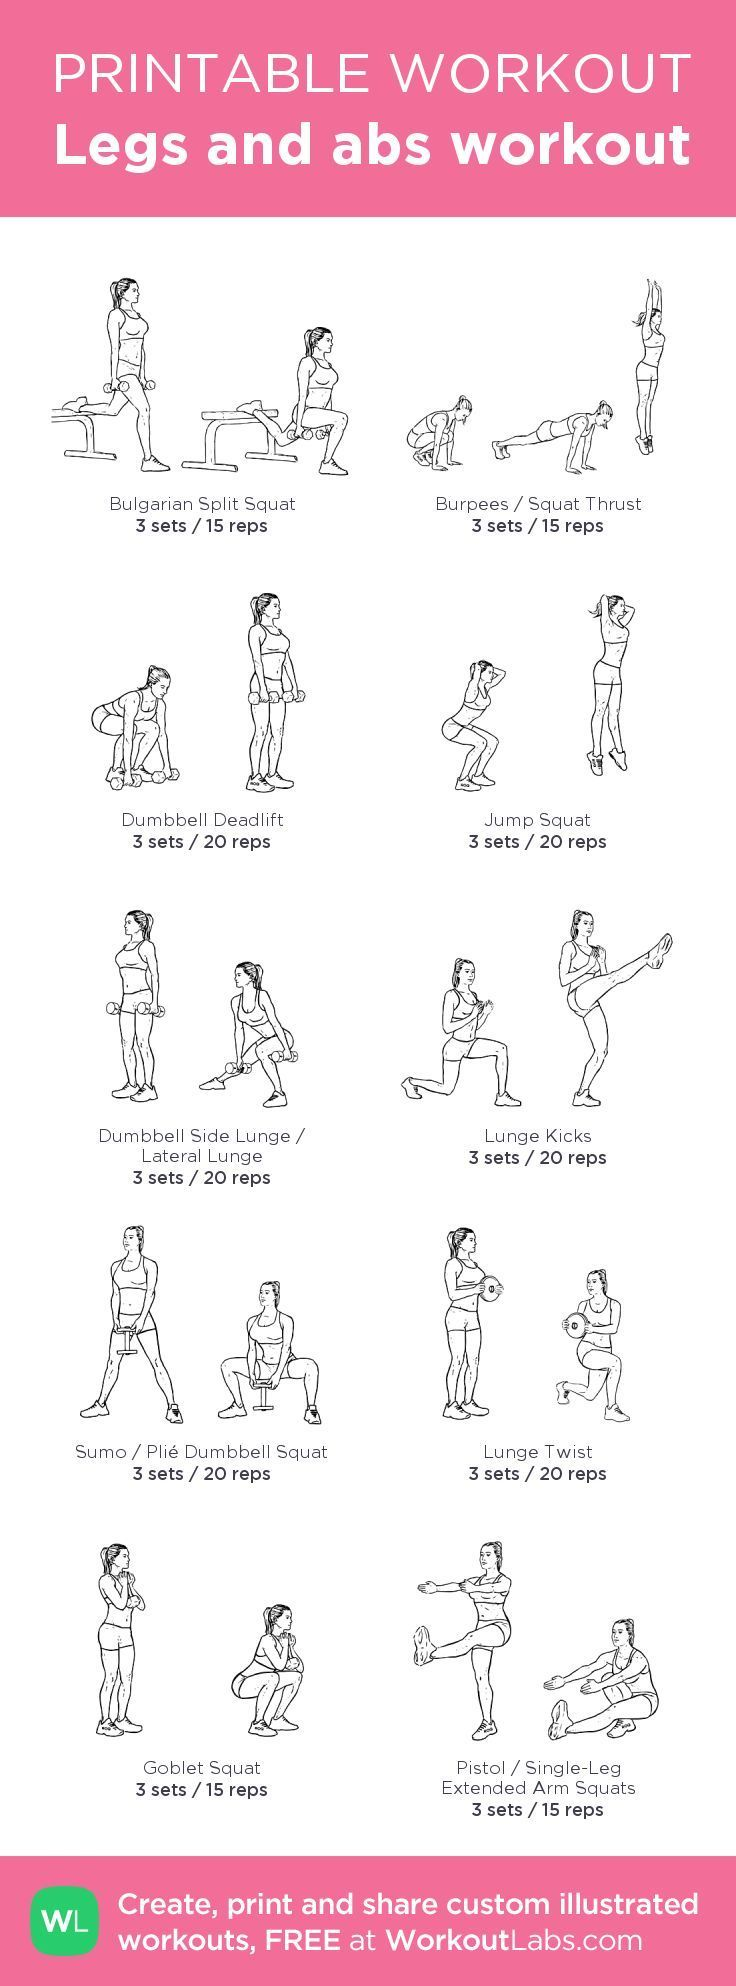 Legs and abs workout – my custom workout created at http://WorkoutLabs.com • Click through to download as printable PDF! #customworkout #correres #deporte #sport #fitness #running